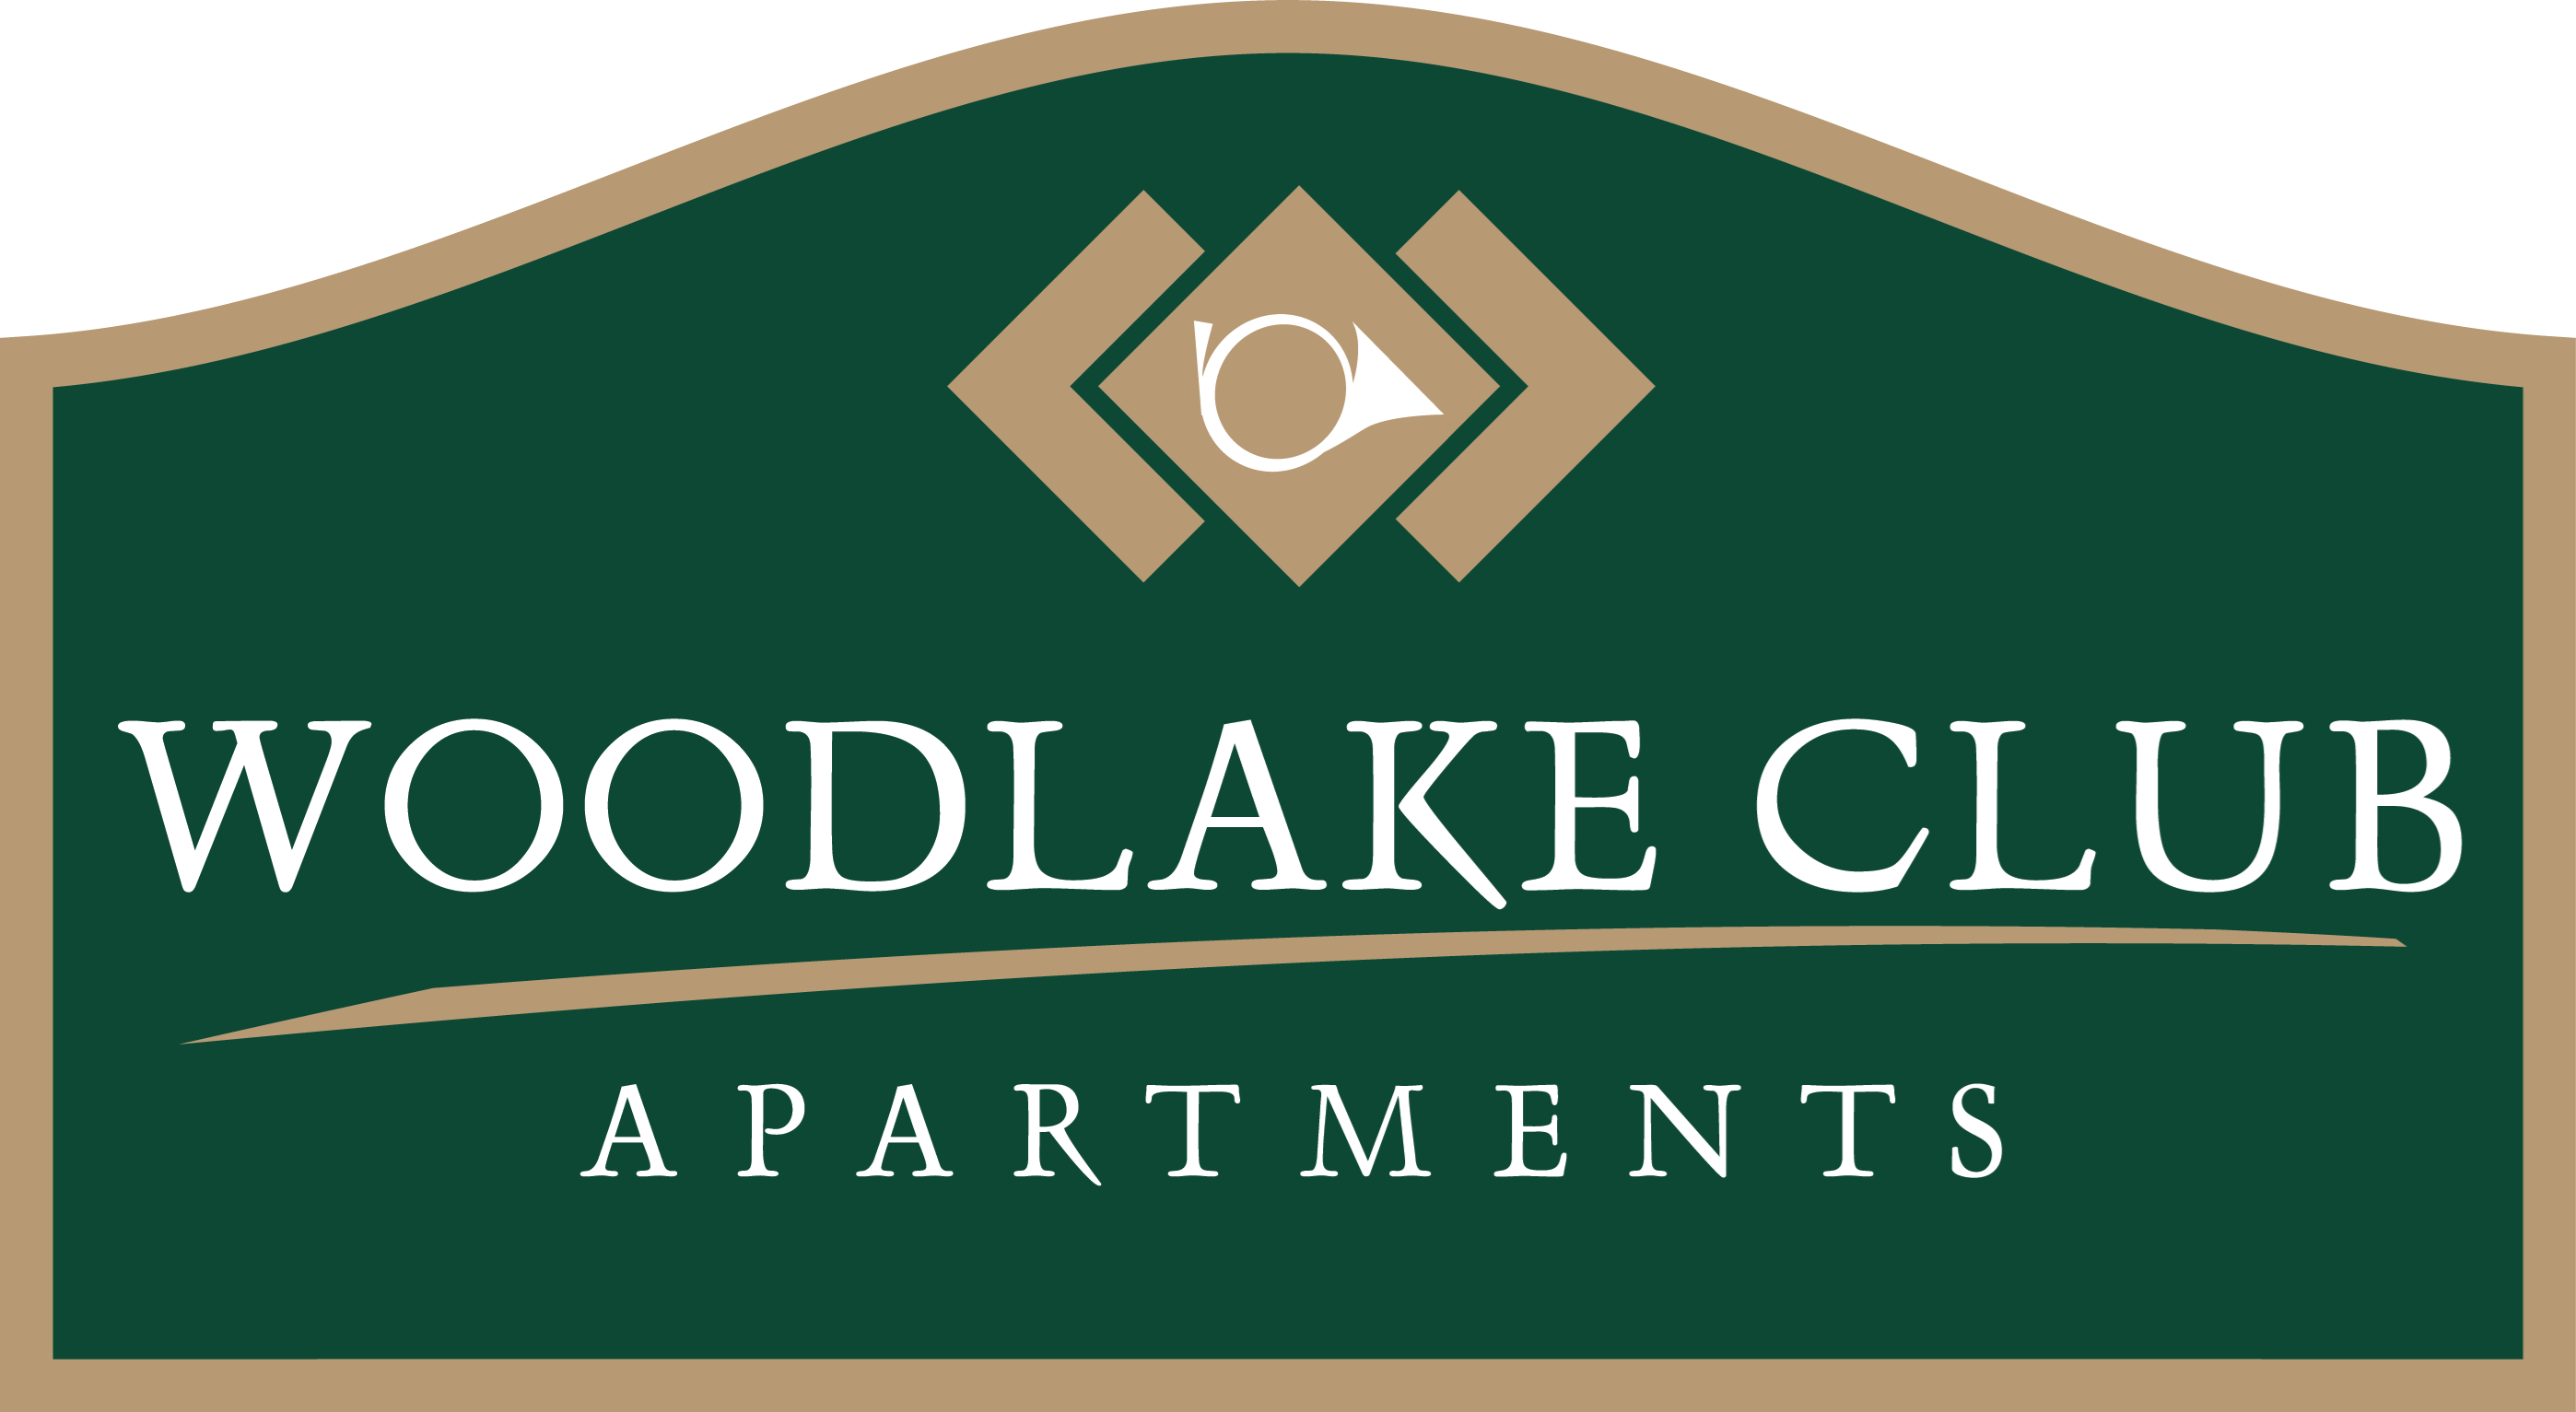 Woodlake Club Apartments for rent in Augusta, GA. Make this community your new home or visit other Concord Rents communities at ConcordRENTS.com. Logo